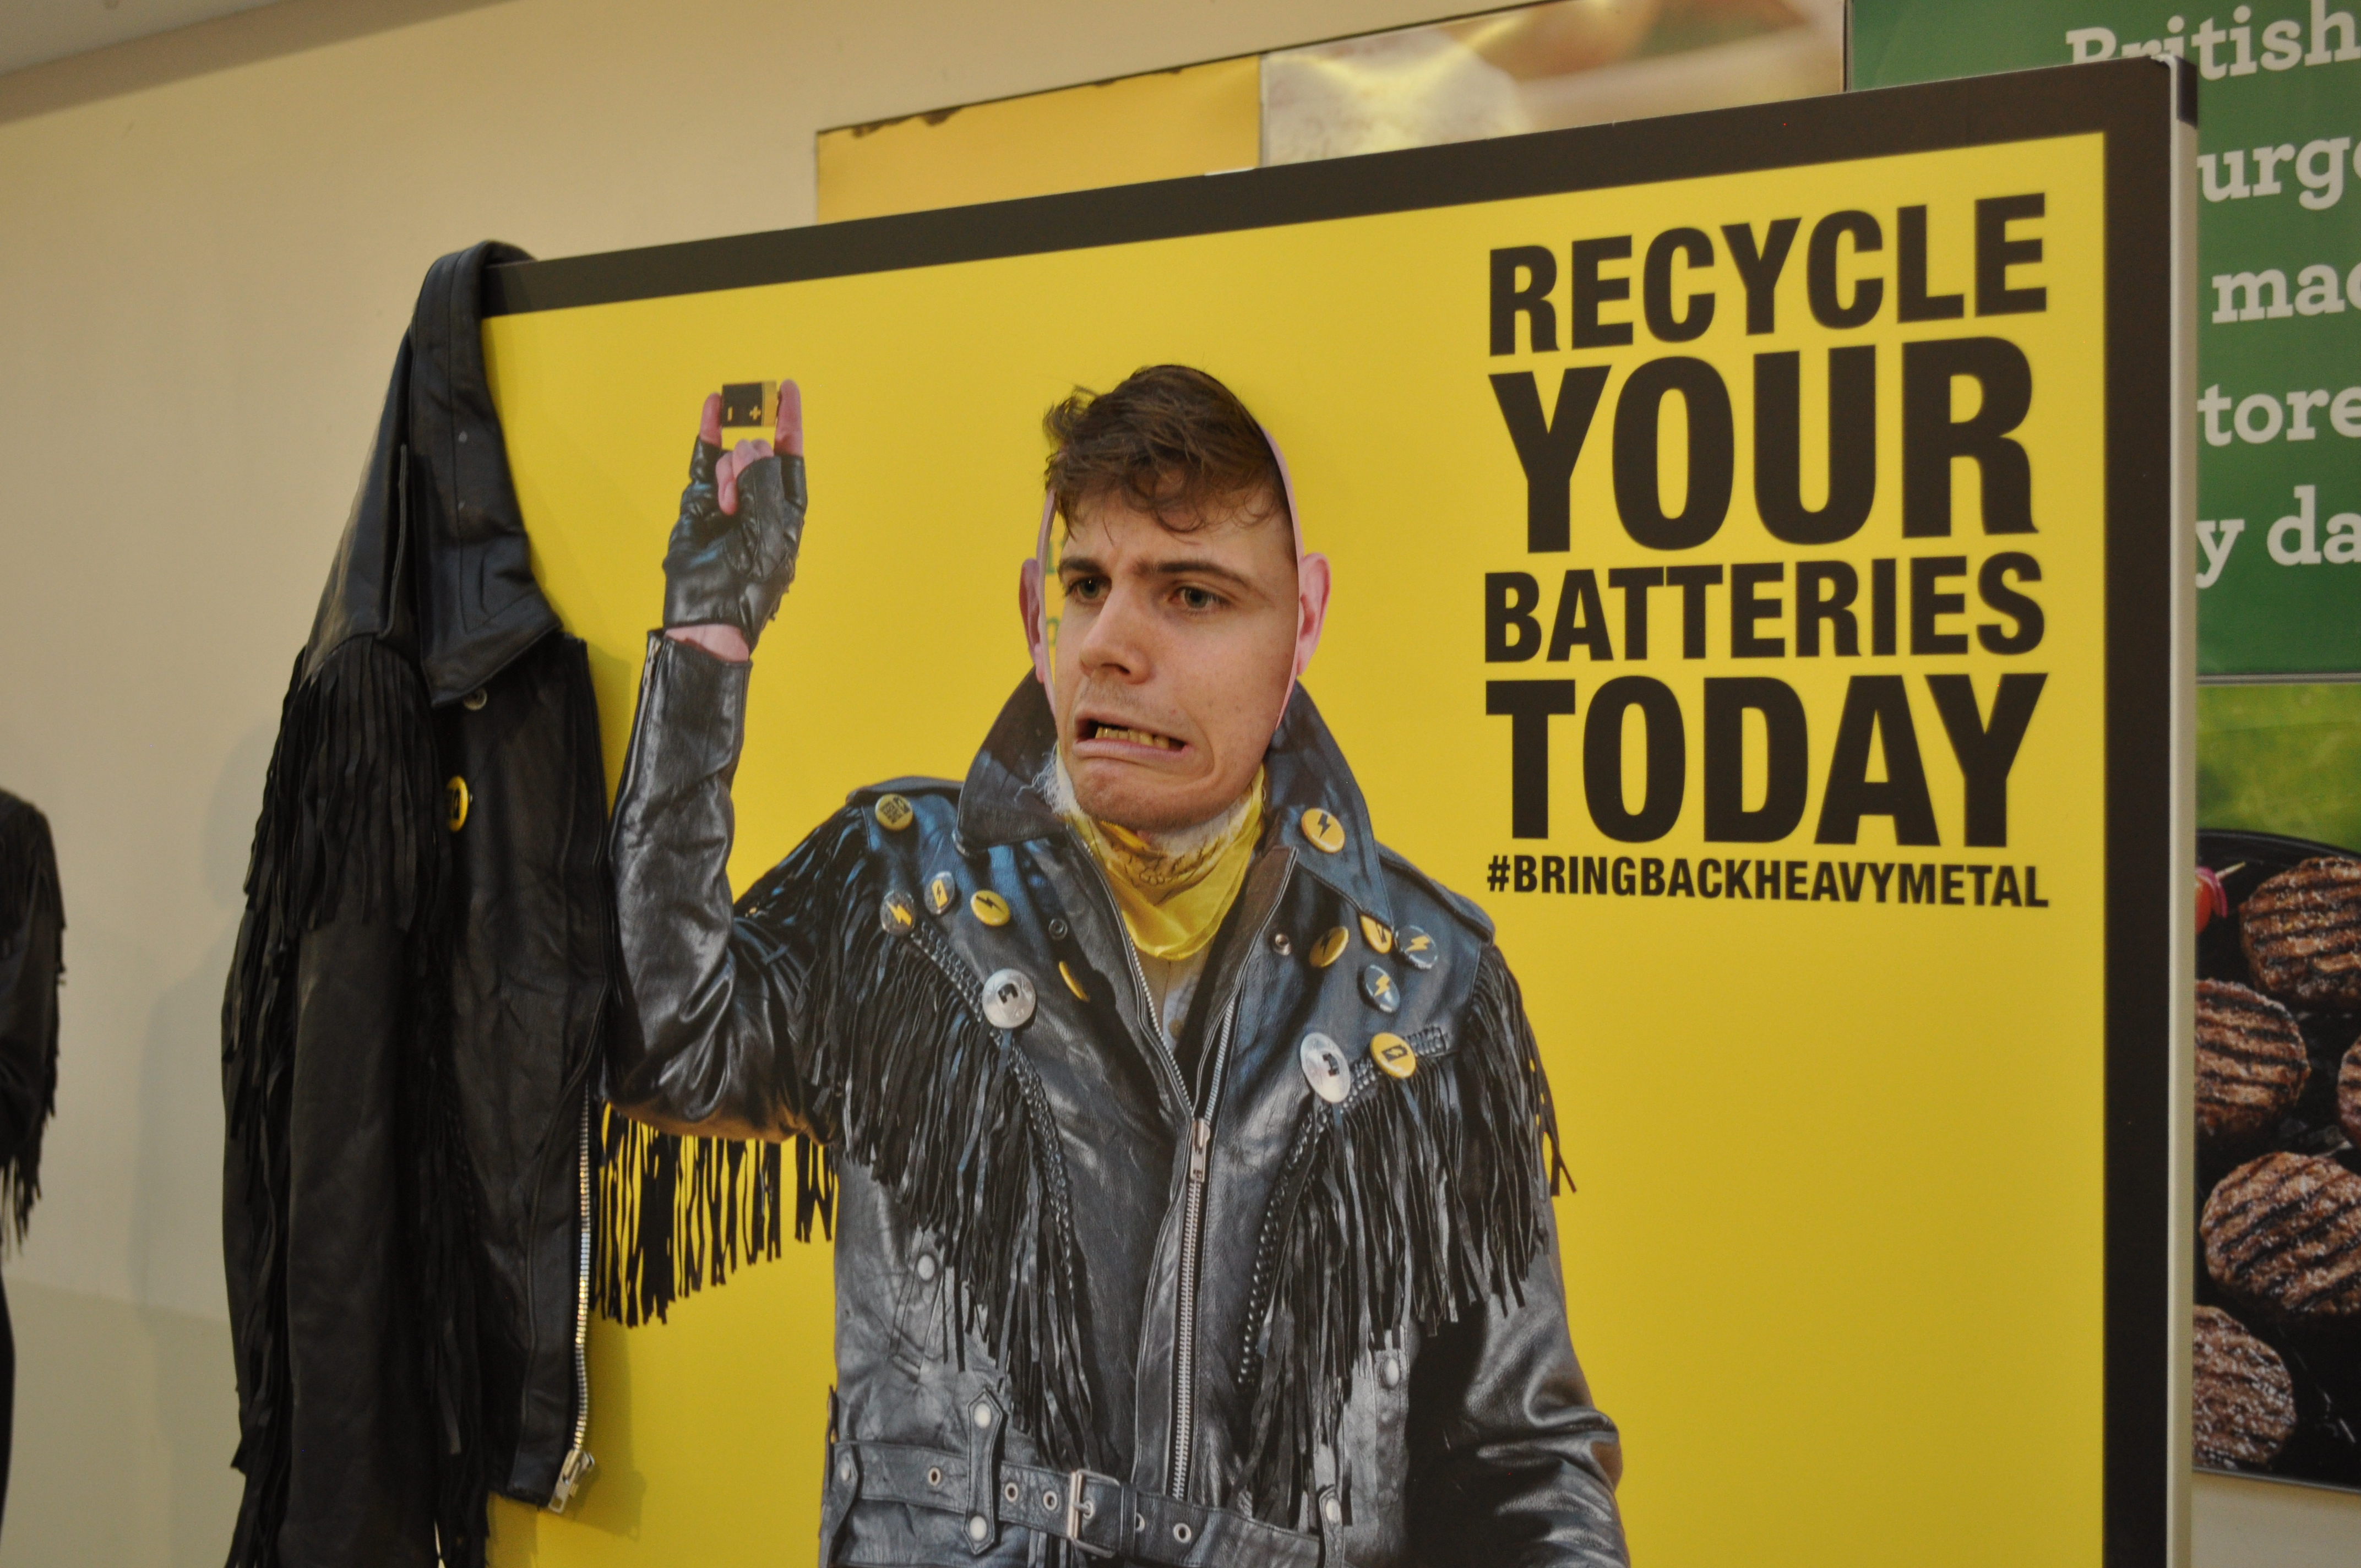 Member of the public poses for photo to promote recycling batteries.